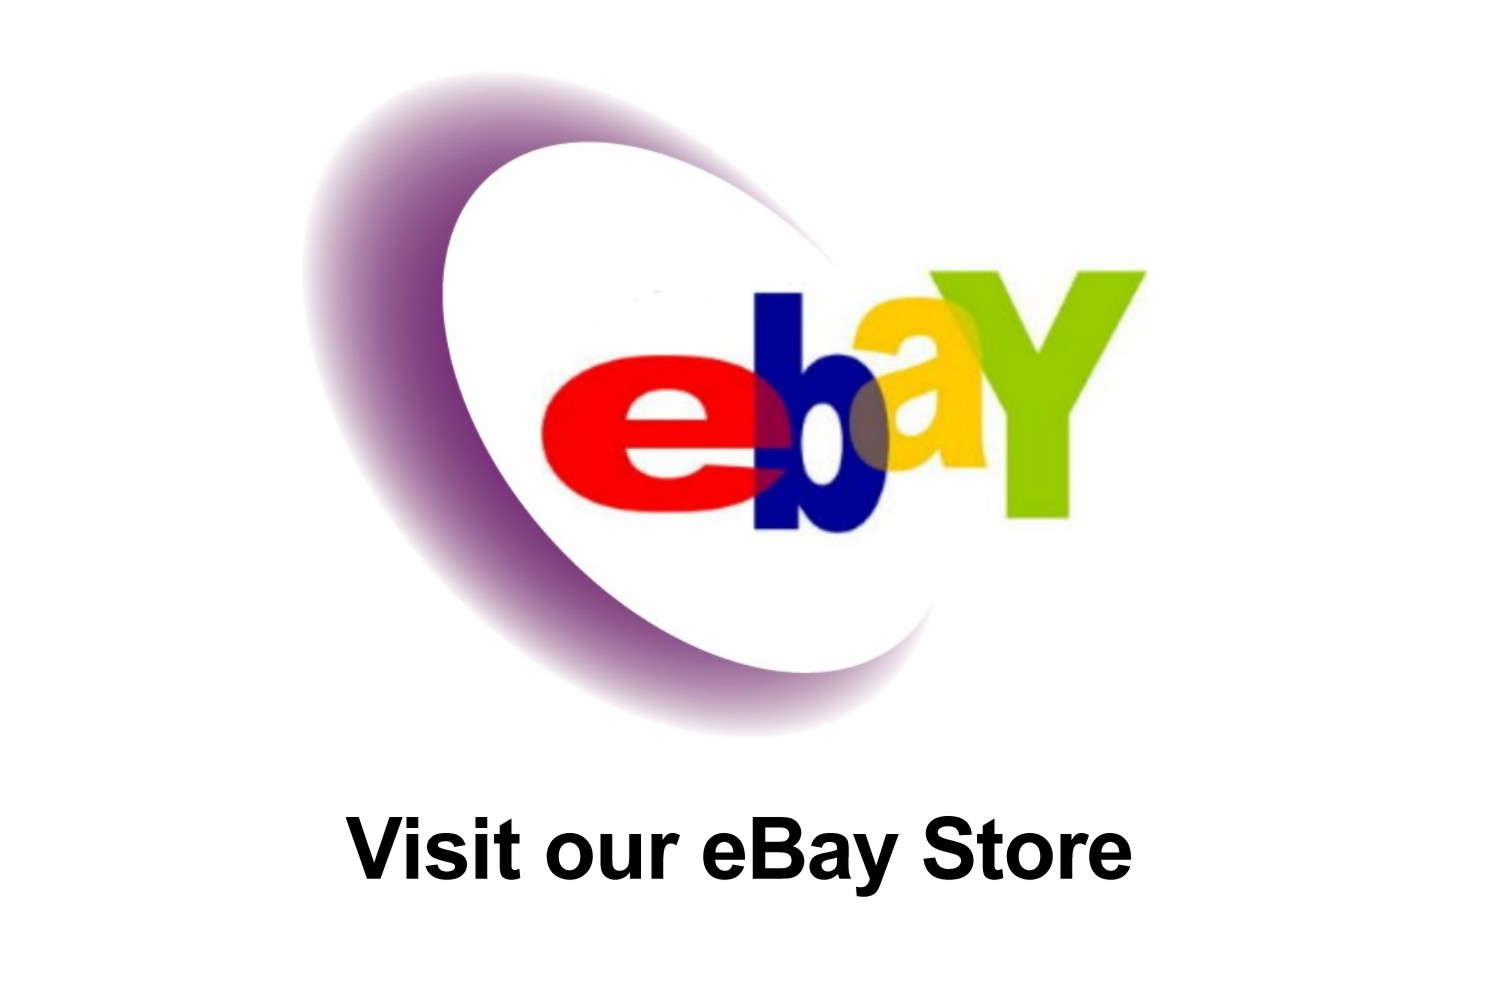 Our Ebay Outlet Store